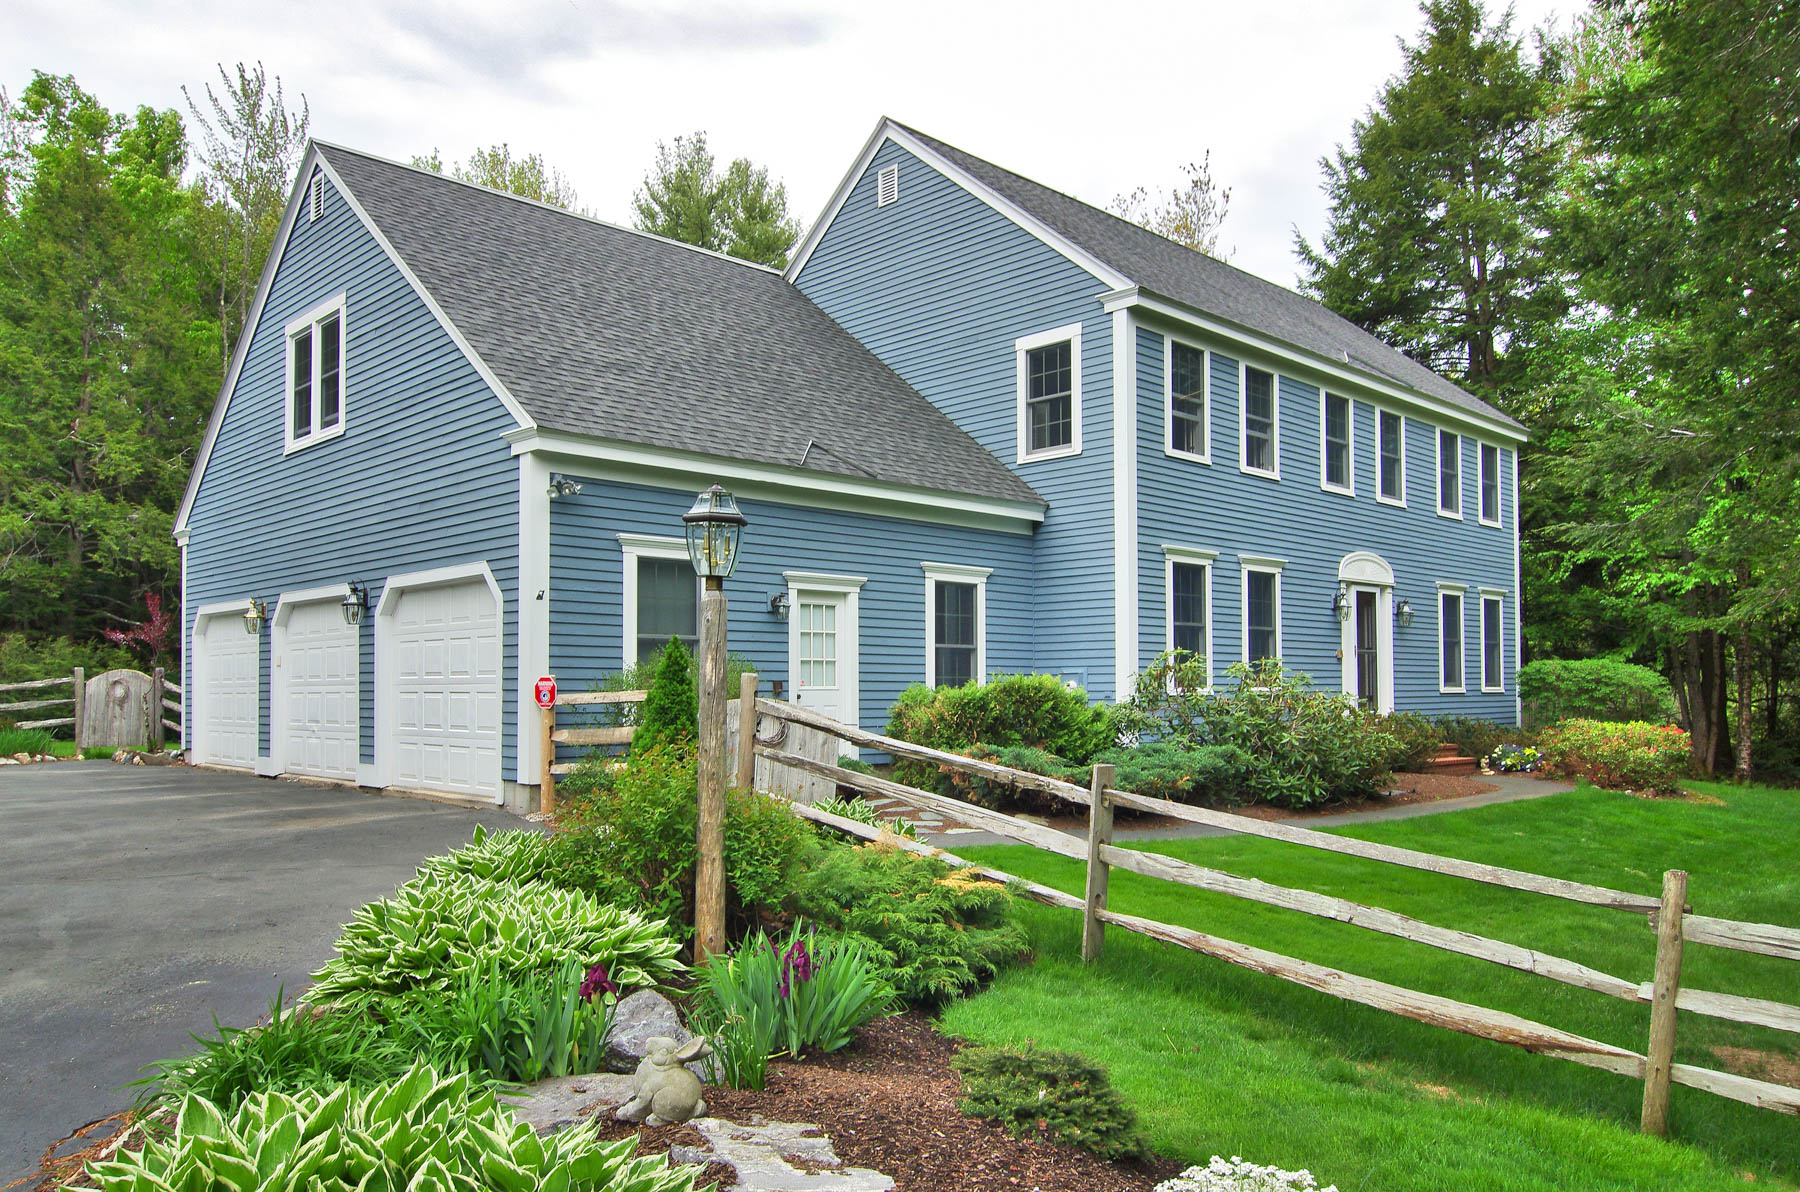 Single Family Home for Sale at 96 Hickory Lane Yarmouth, Maine 04096 United States